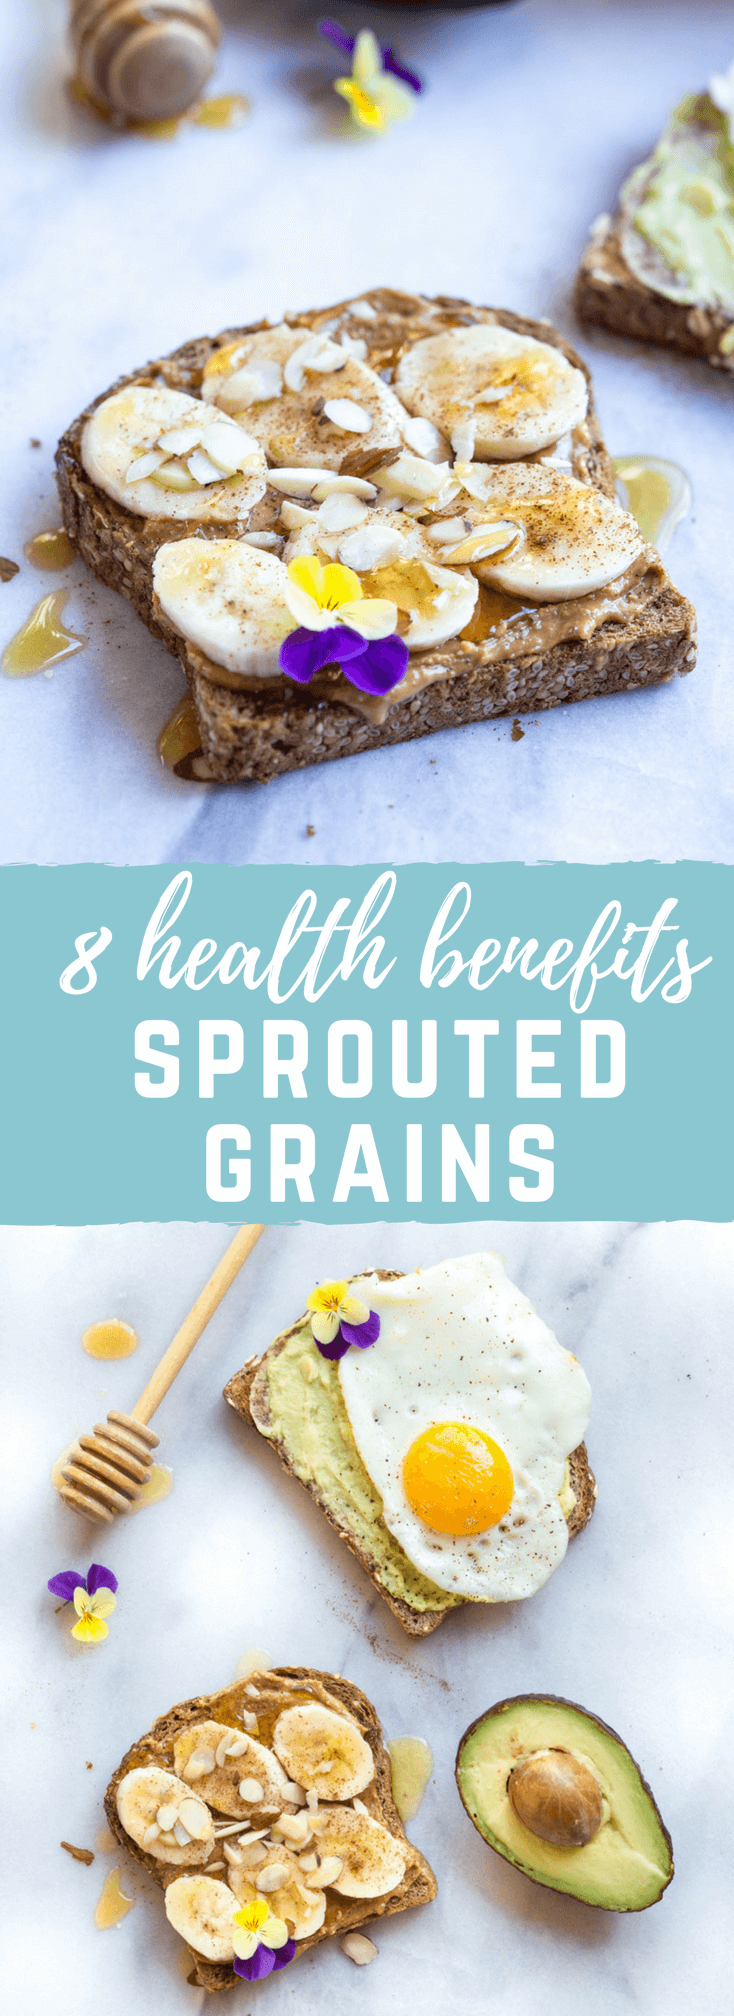 What Are Sprouted Grains? Health Benefits of Sprouted Grains explained. Sprouting unlocks nutrients in 3 easy steps, making them easier to digest!